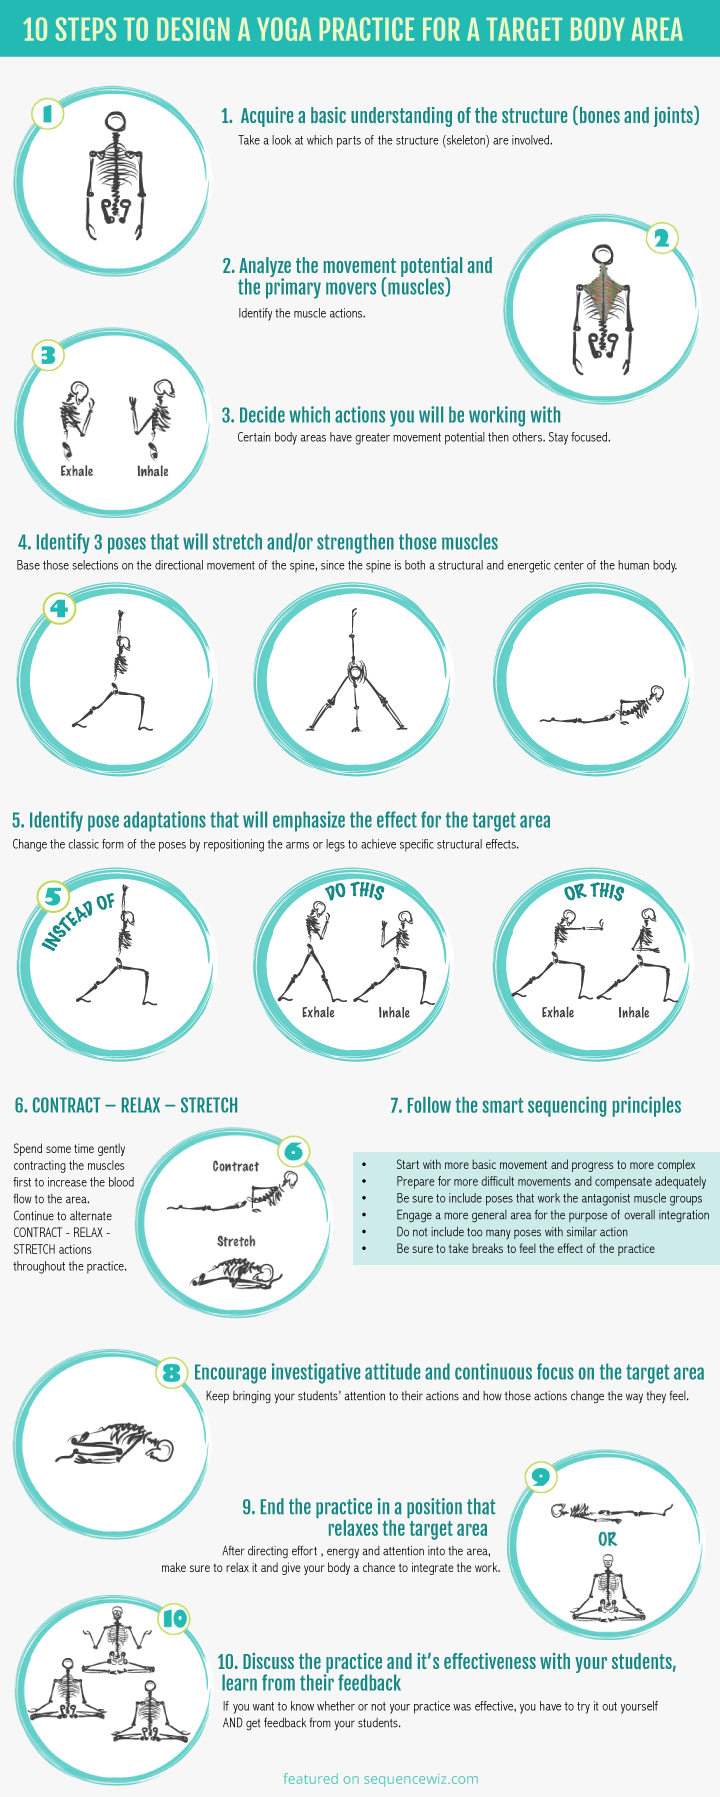 Yoga for a Target Body Area